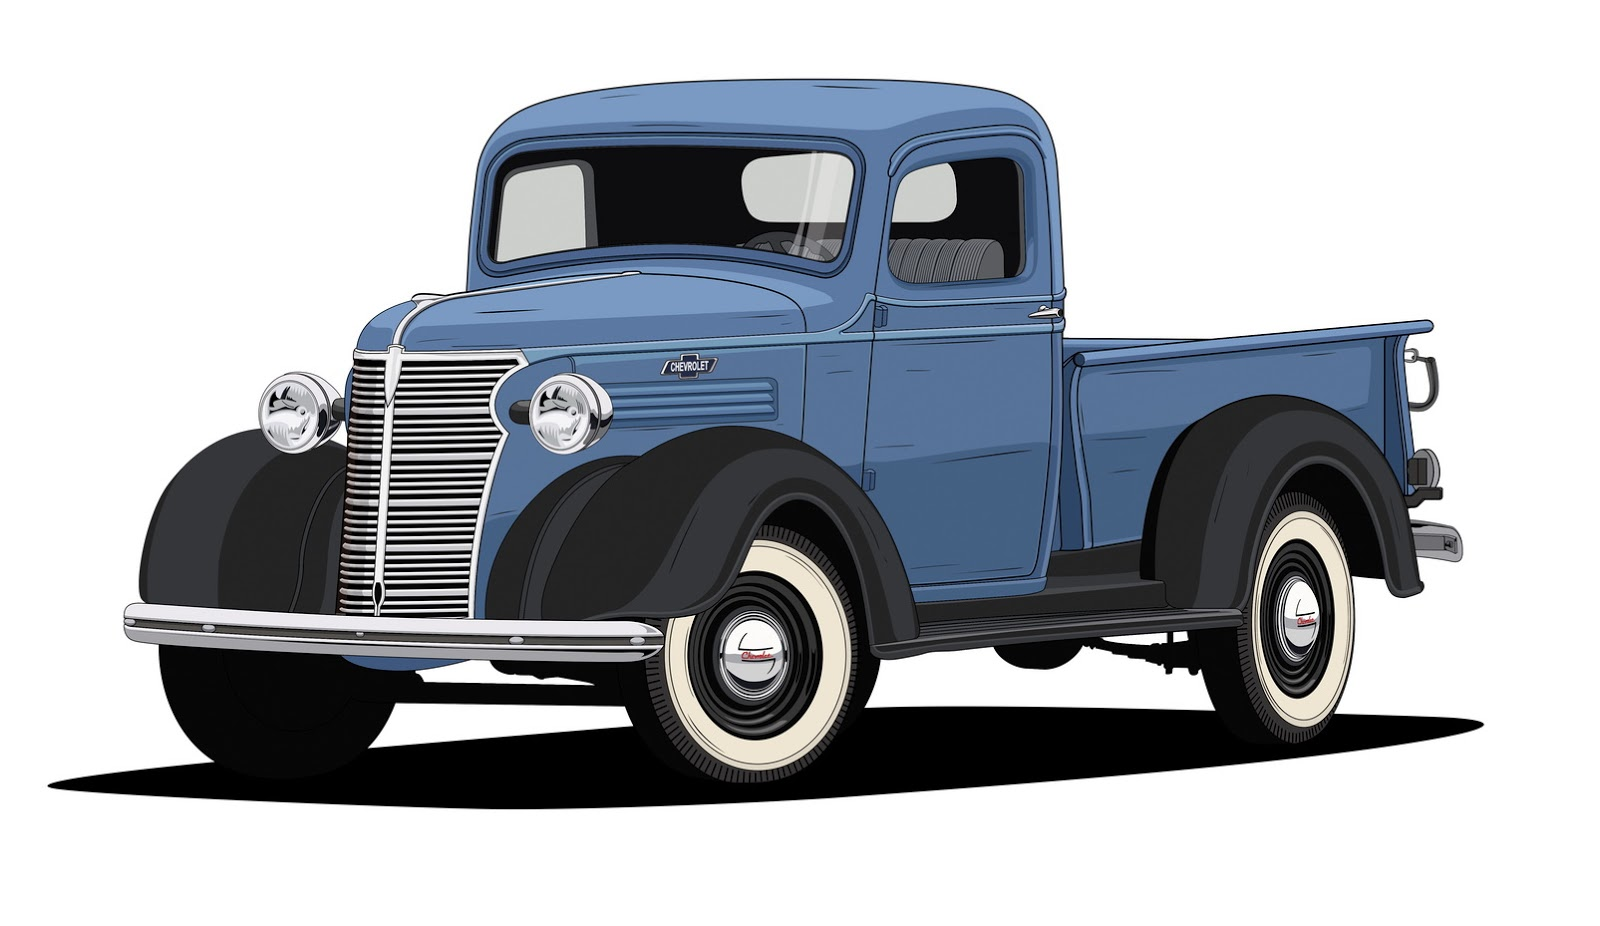 chevy-100yrs-iconic-designs-5